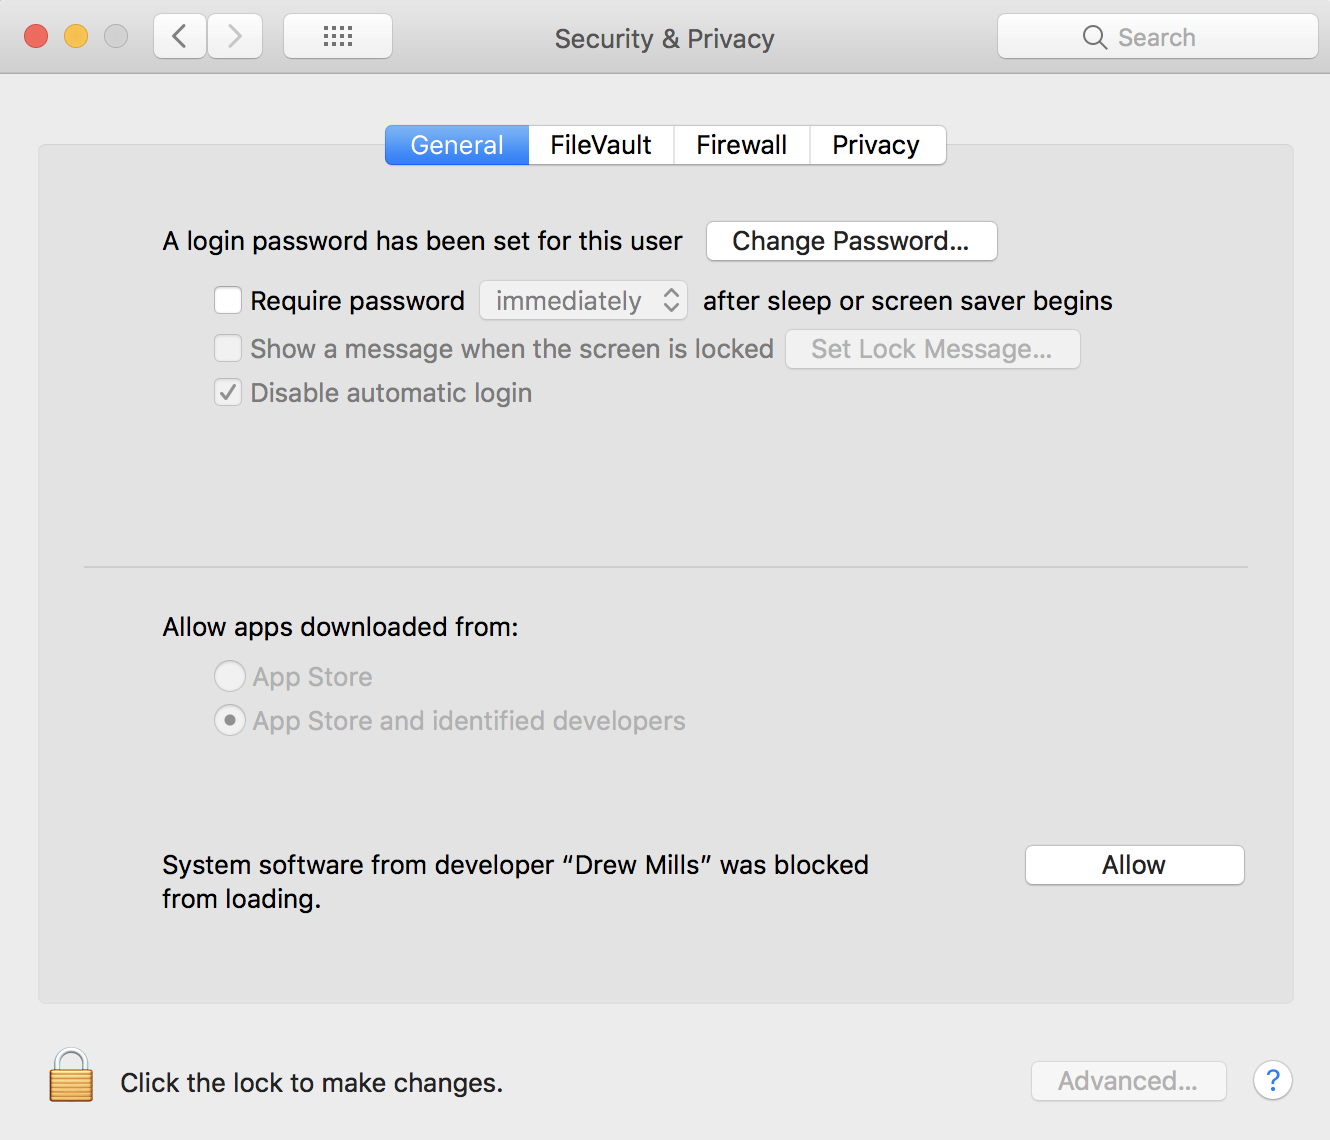 Security and Privacy panel in the macOS System Preferences